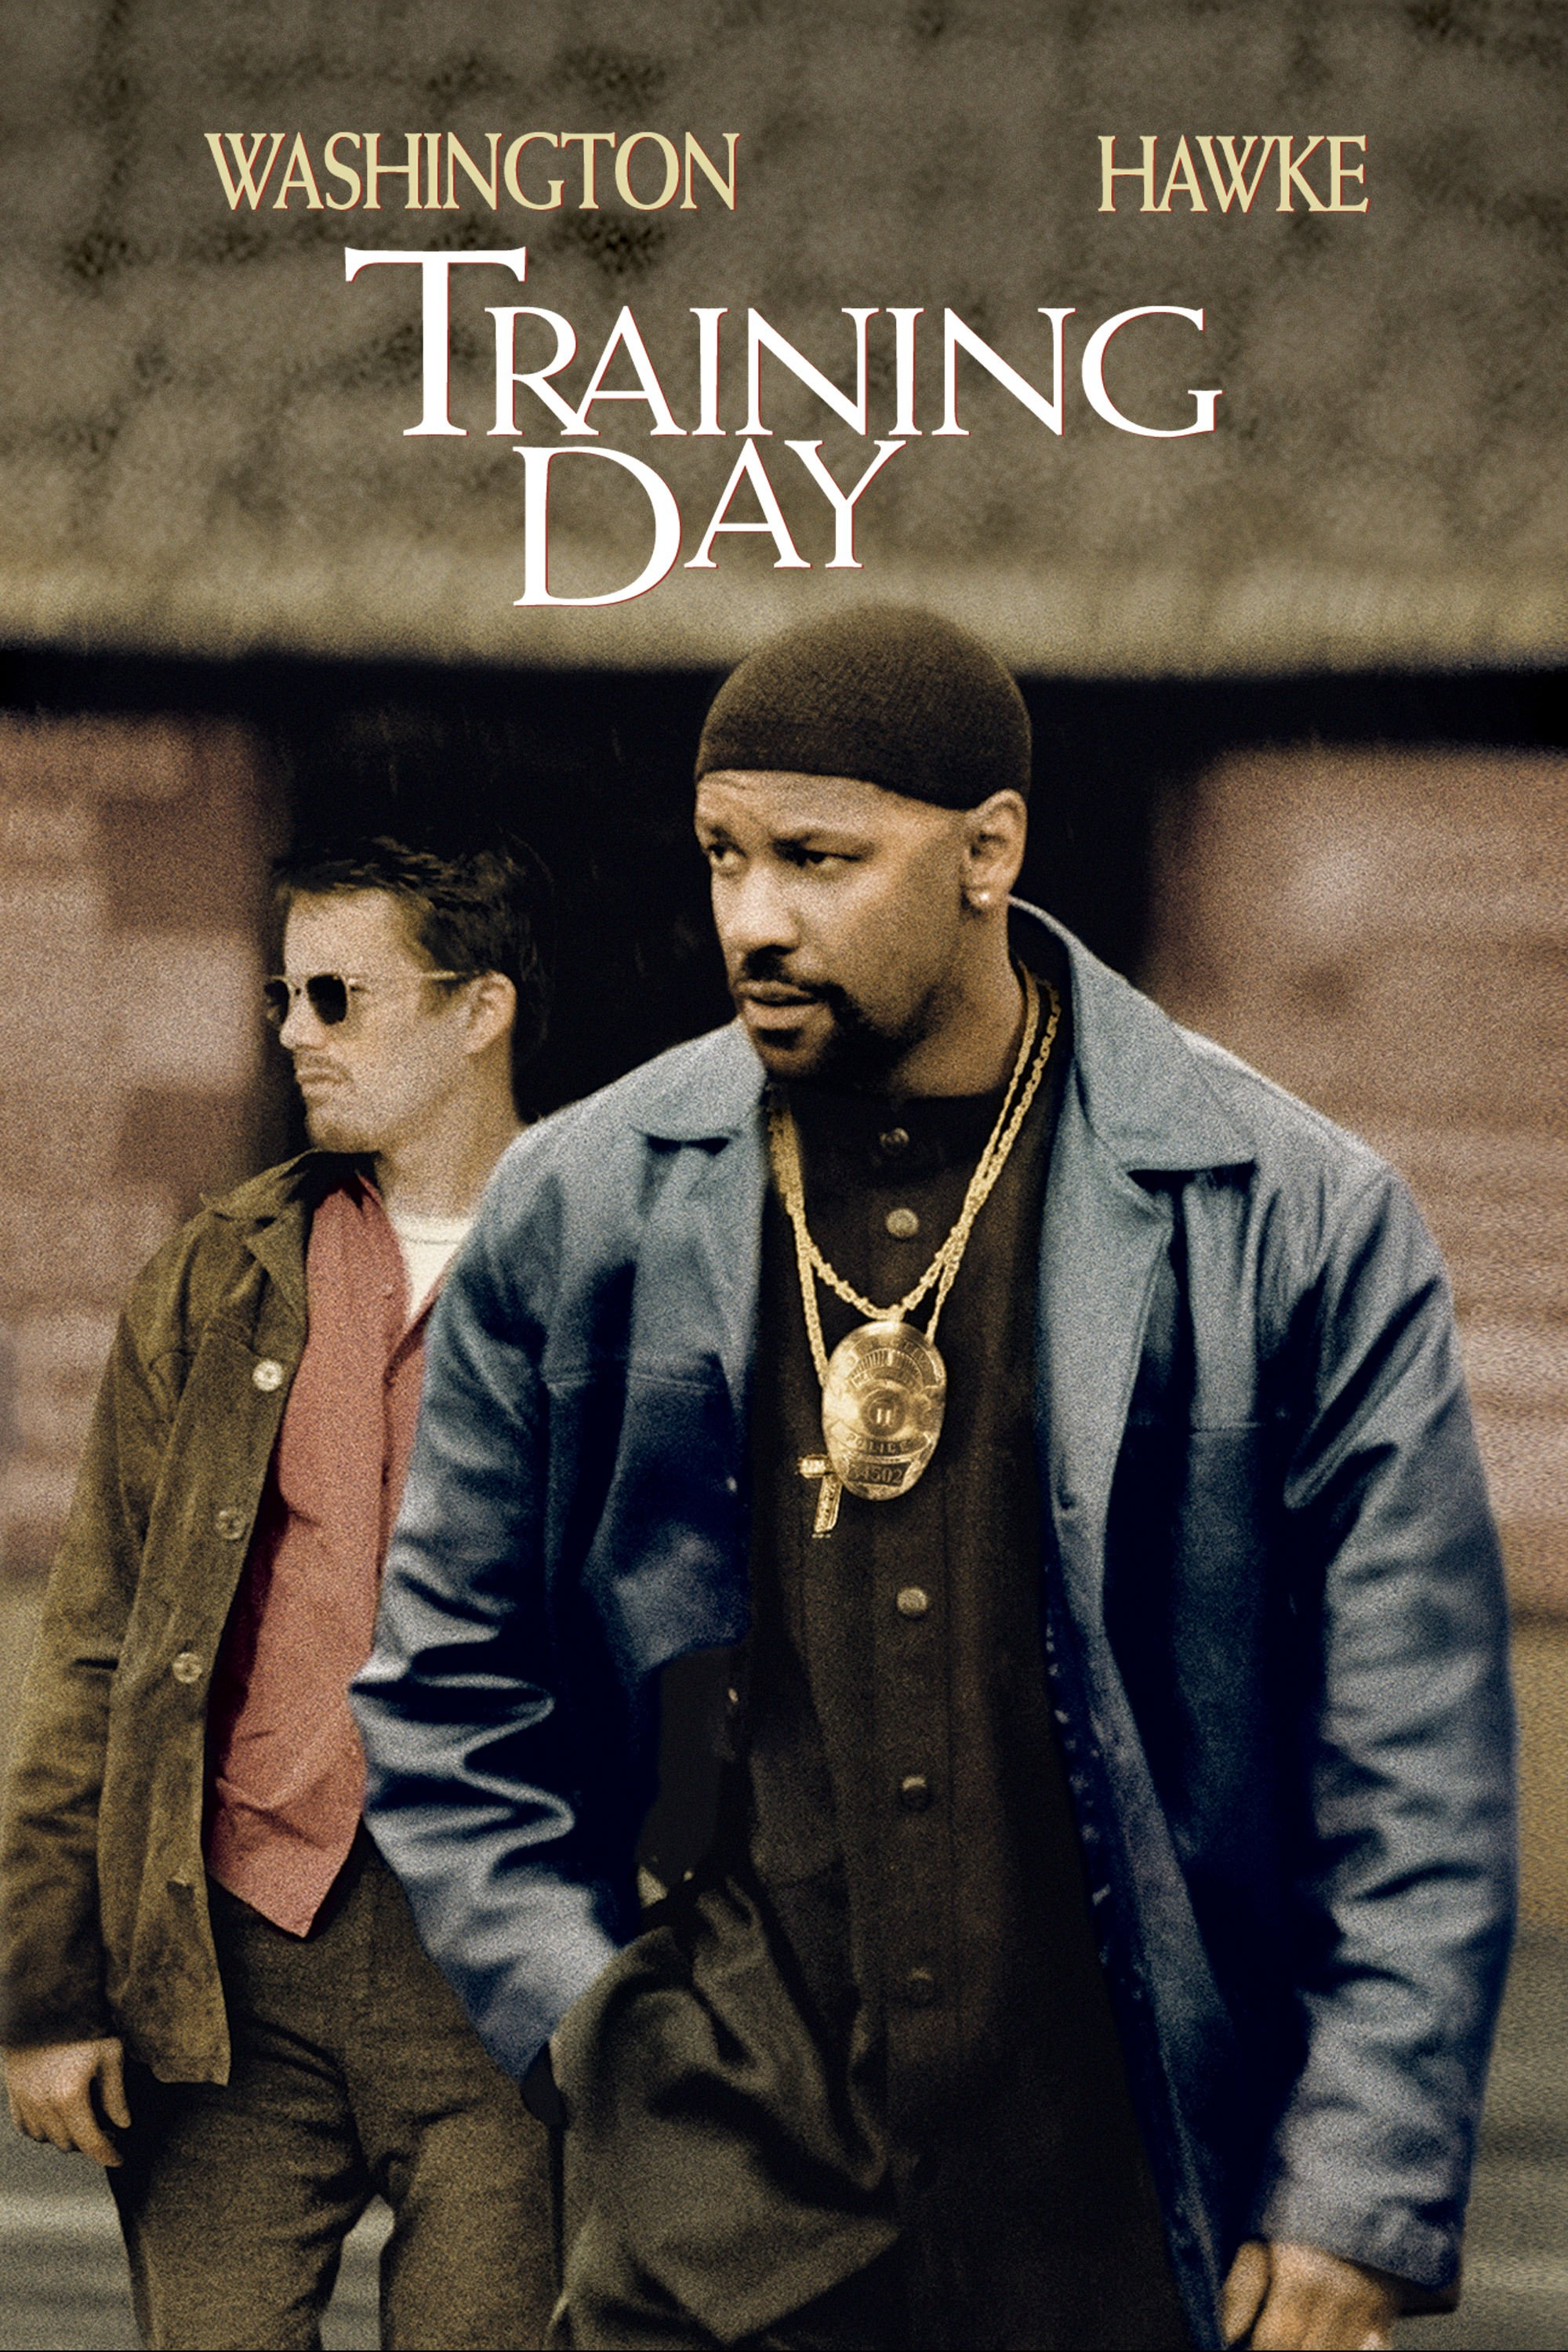 training-day-filming-locations-poster